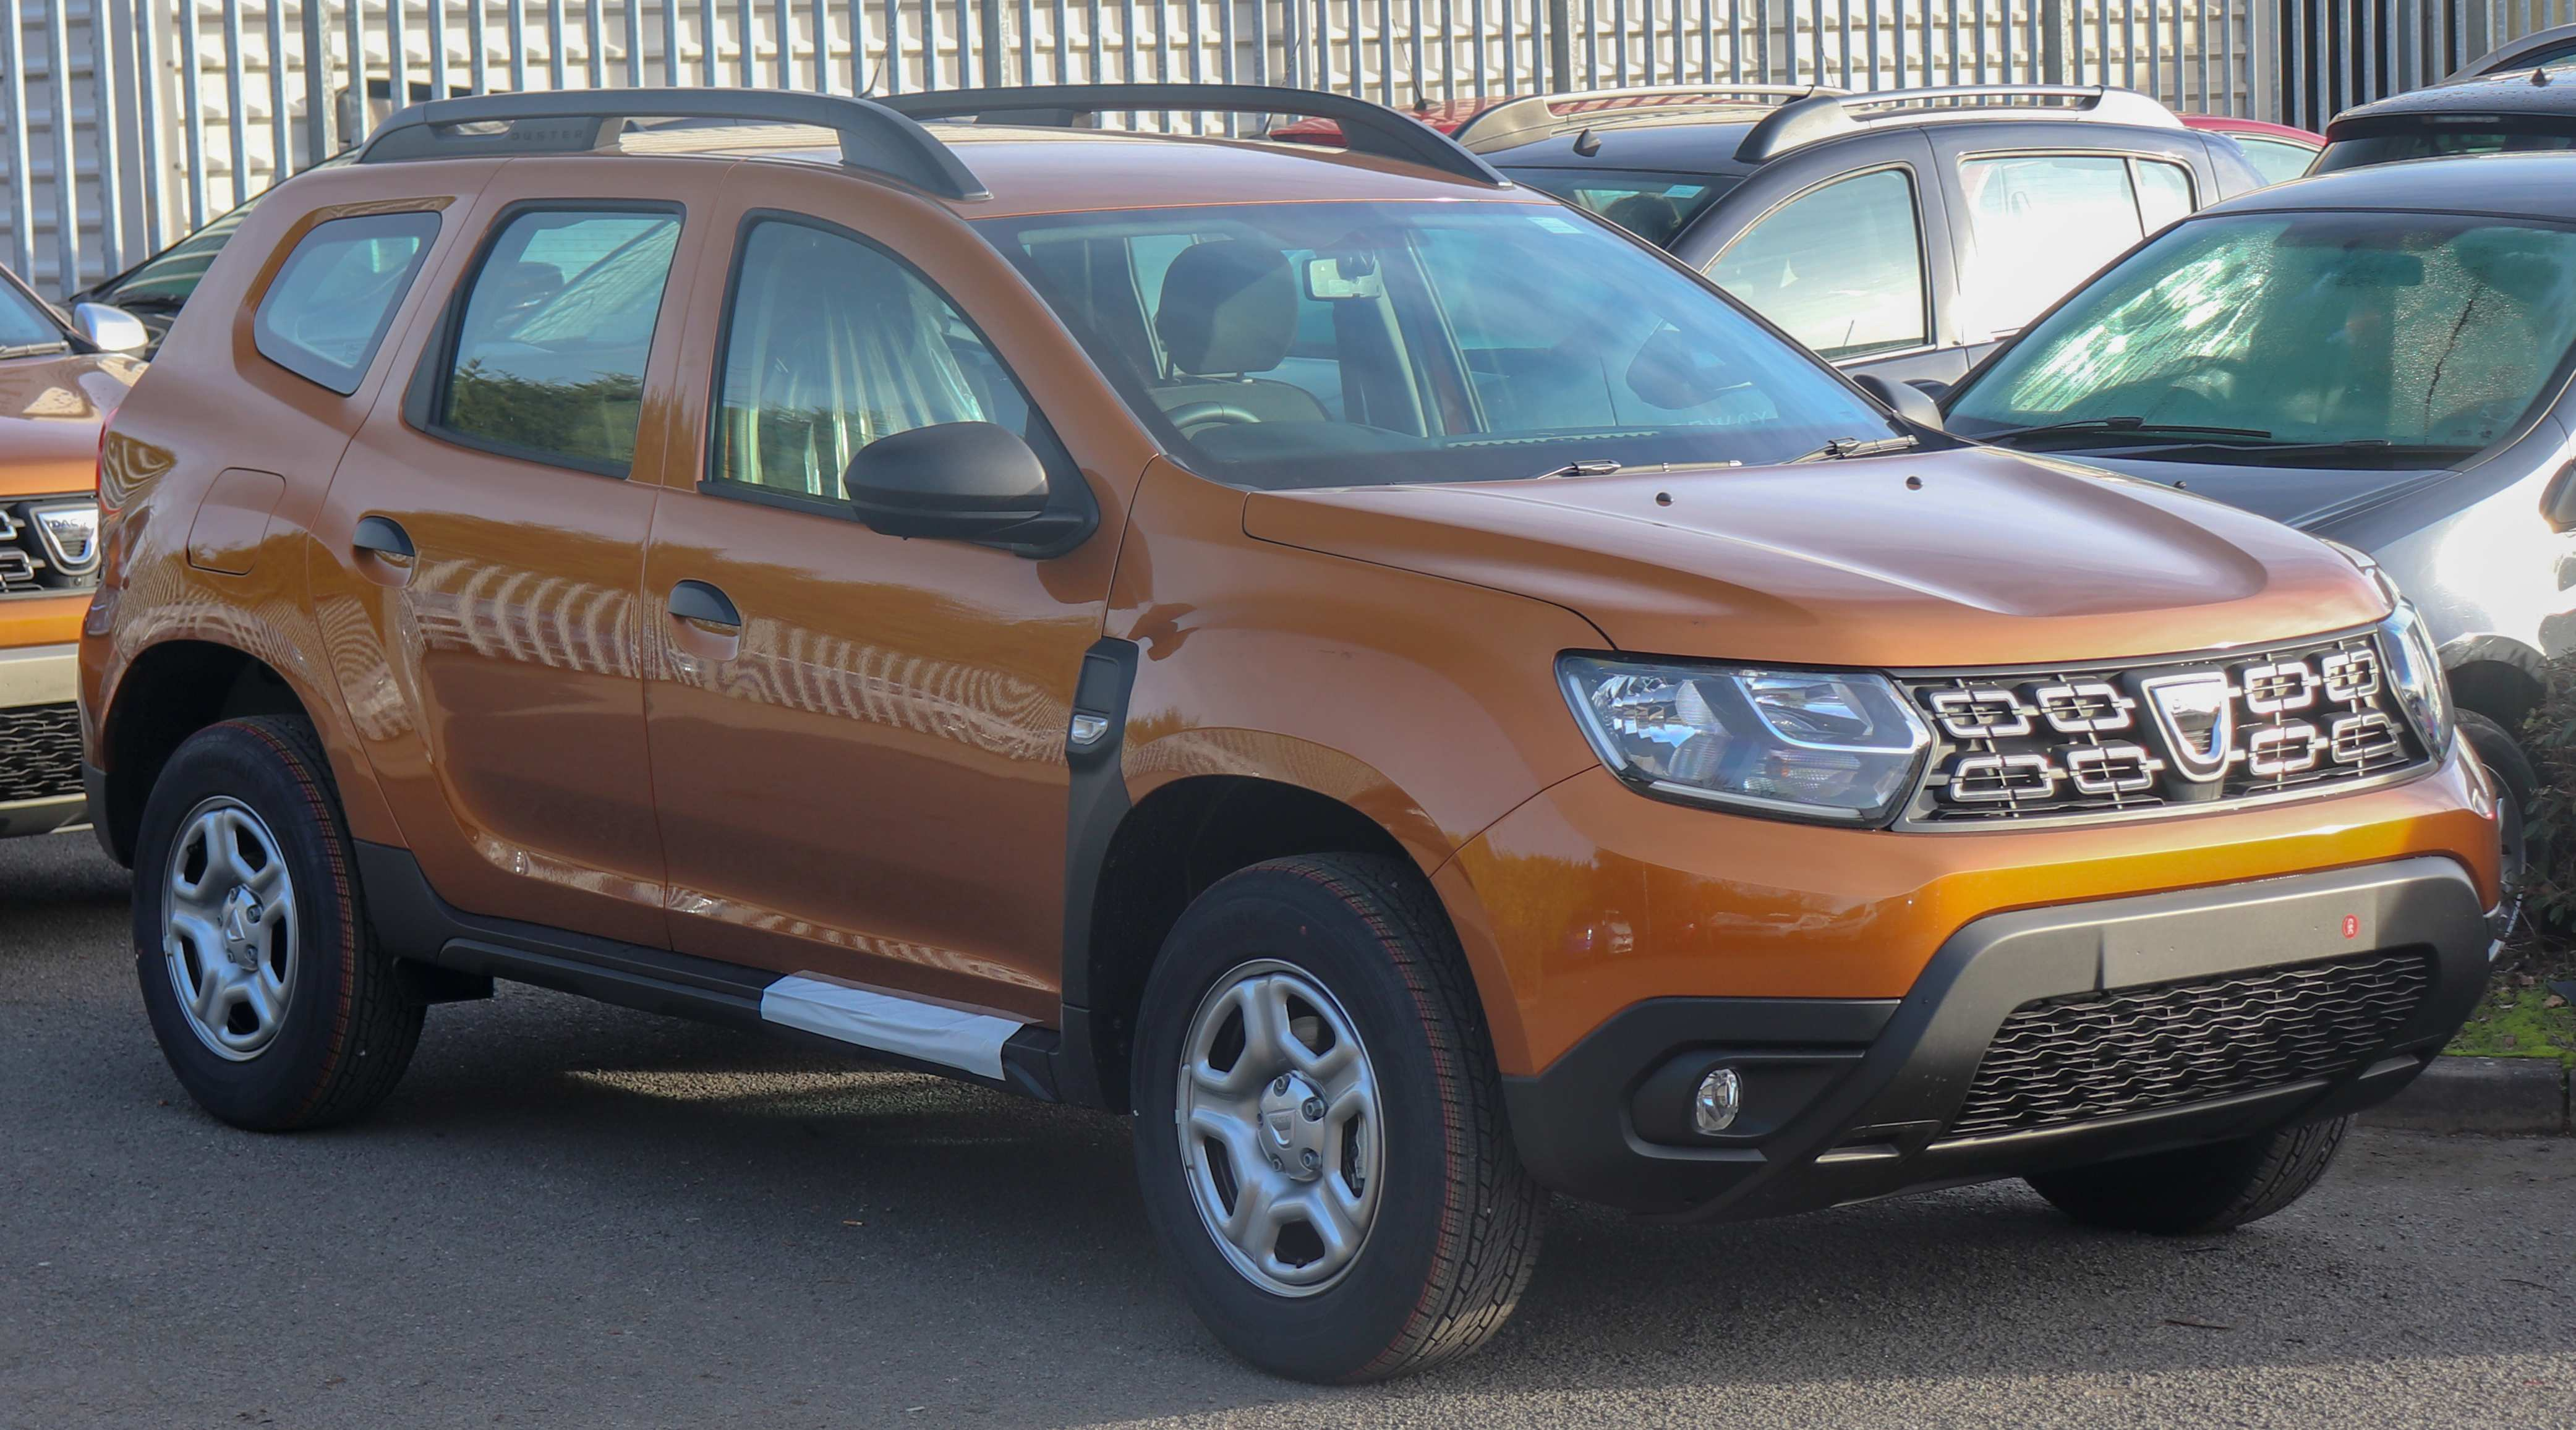 64 The Best Renault Duster 2019 Colombia Release Date